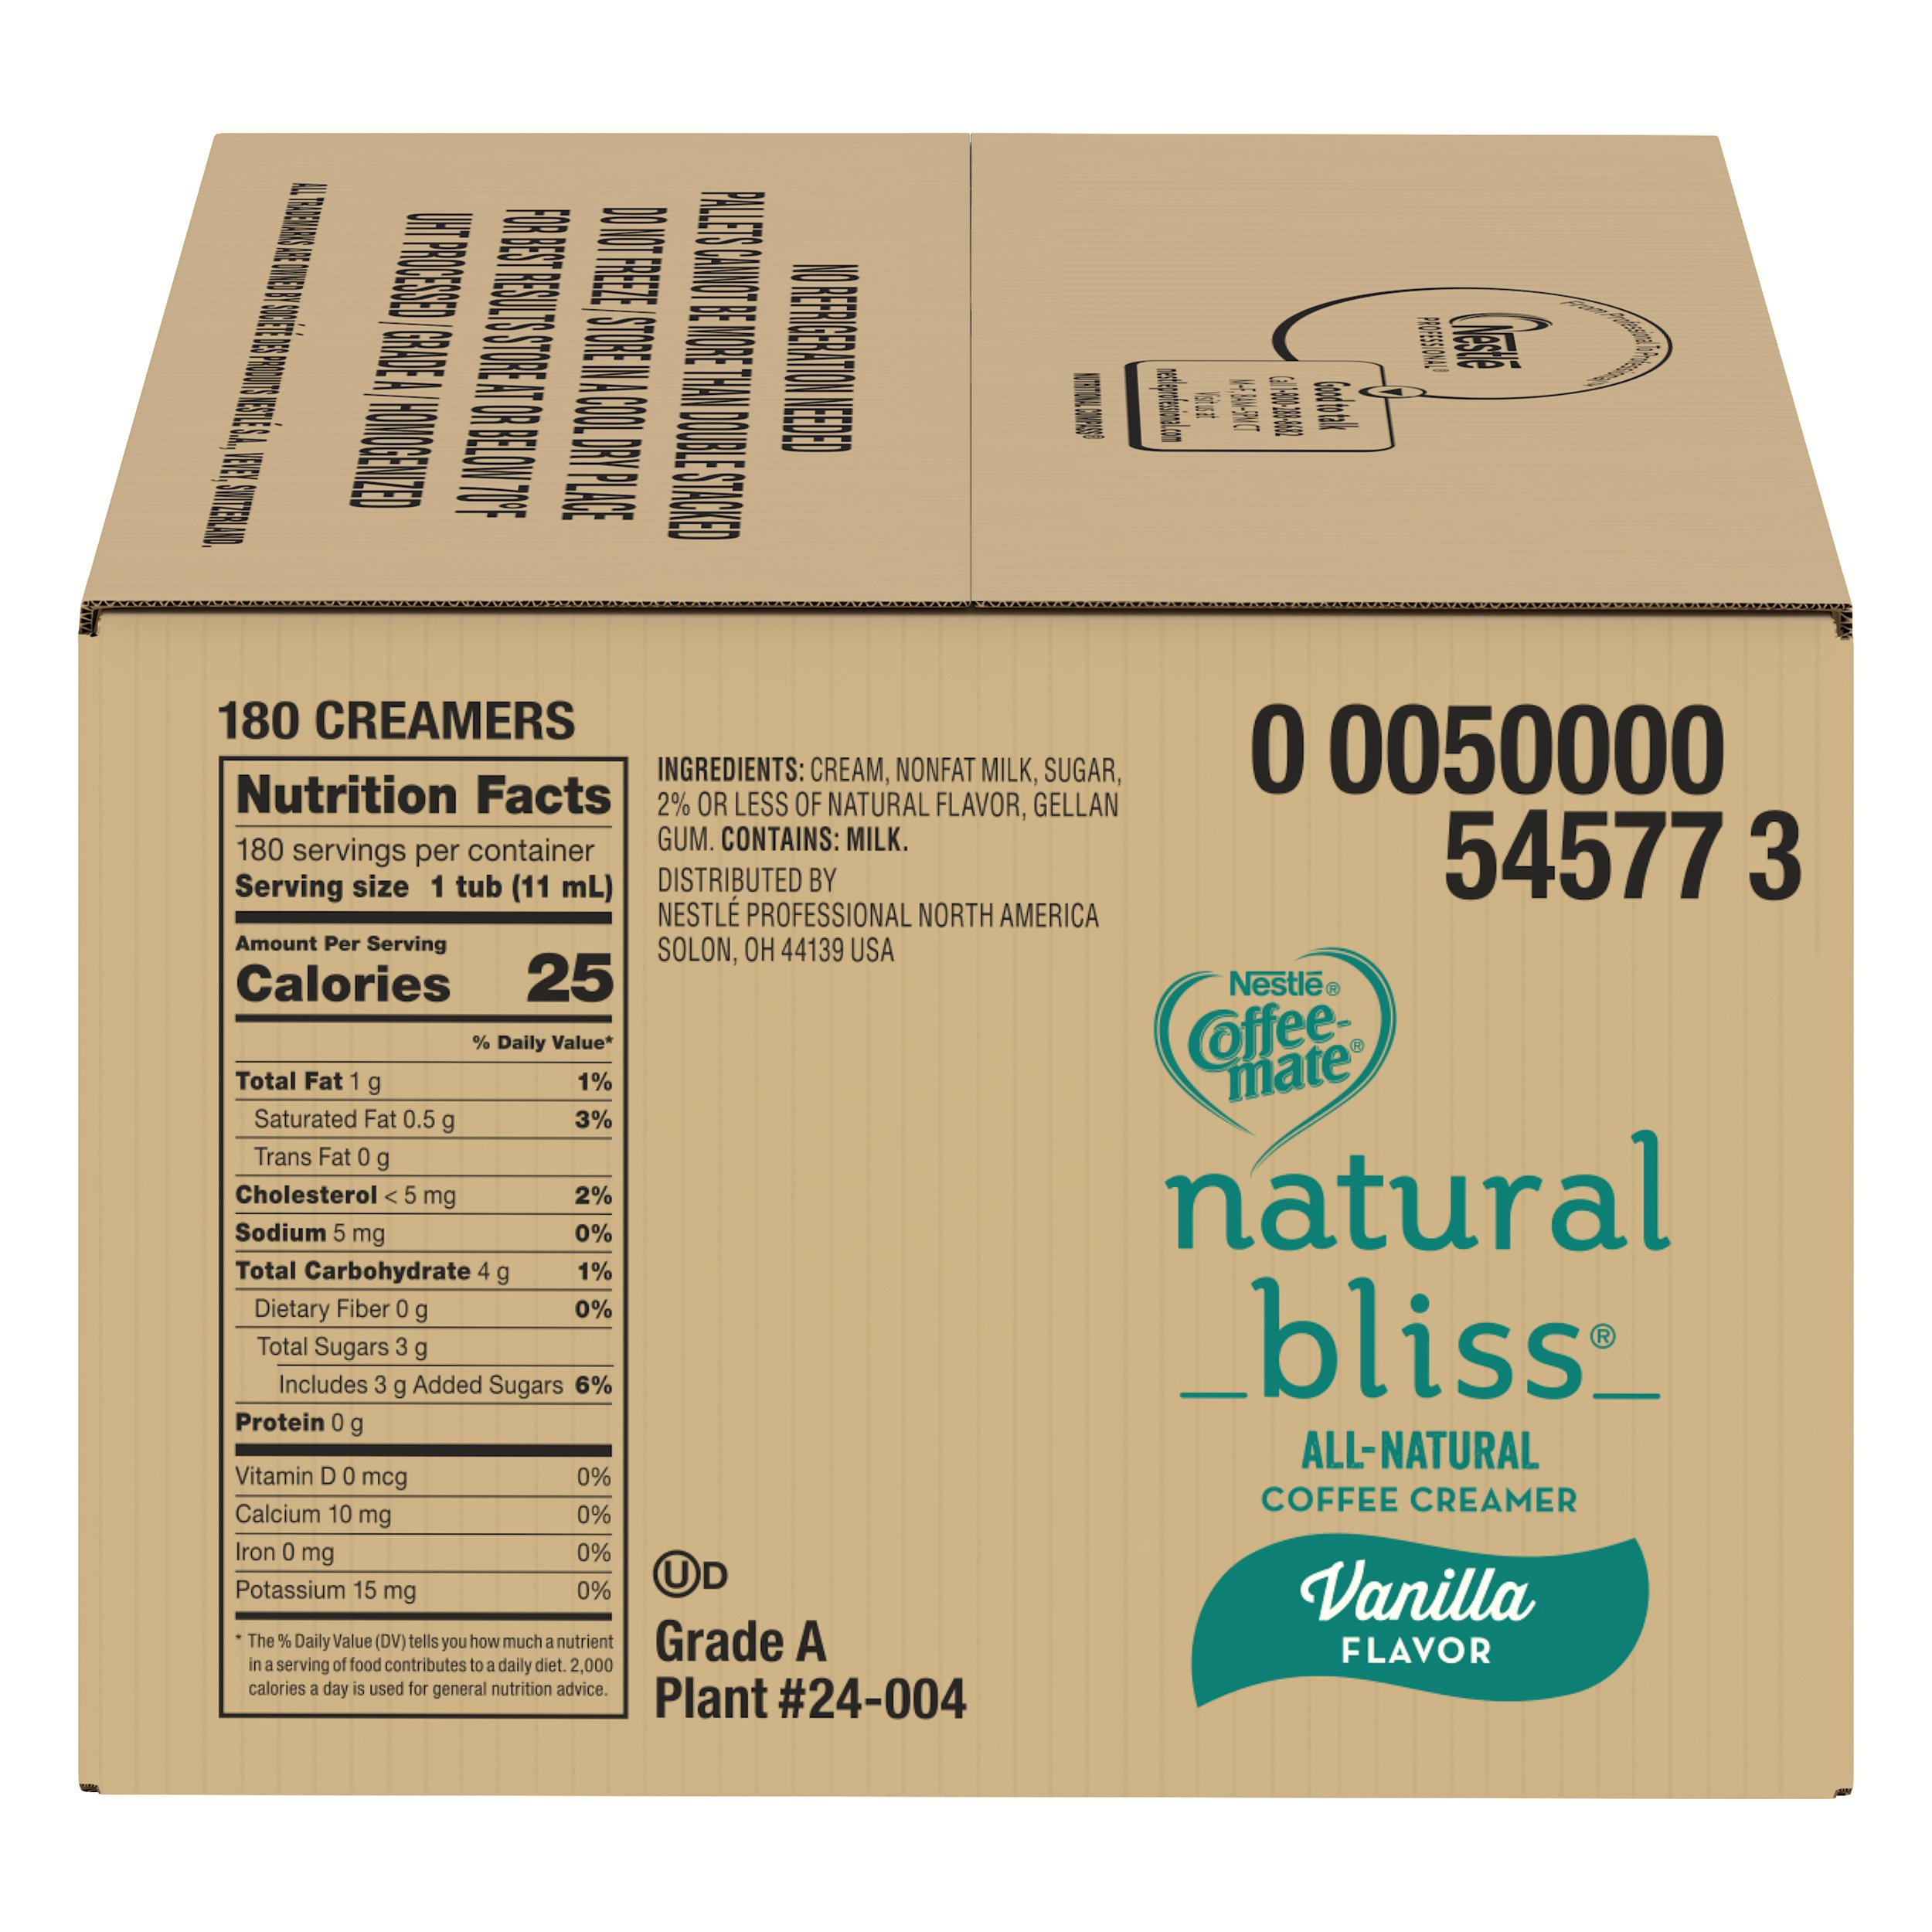 Nestle Coffee-mate Coffee Creamer, Natural Bliss, liquid creamer singles,180 Count (Pack of 1) by Nestle Coffee Mate (Image #4)